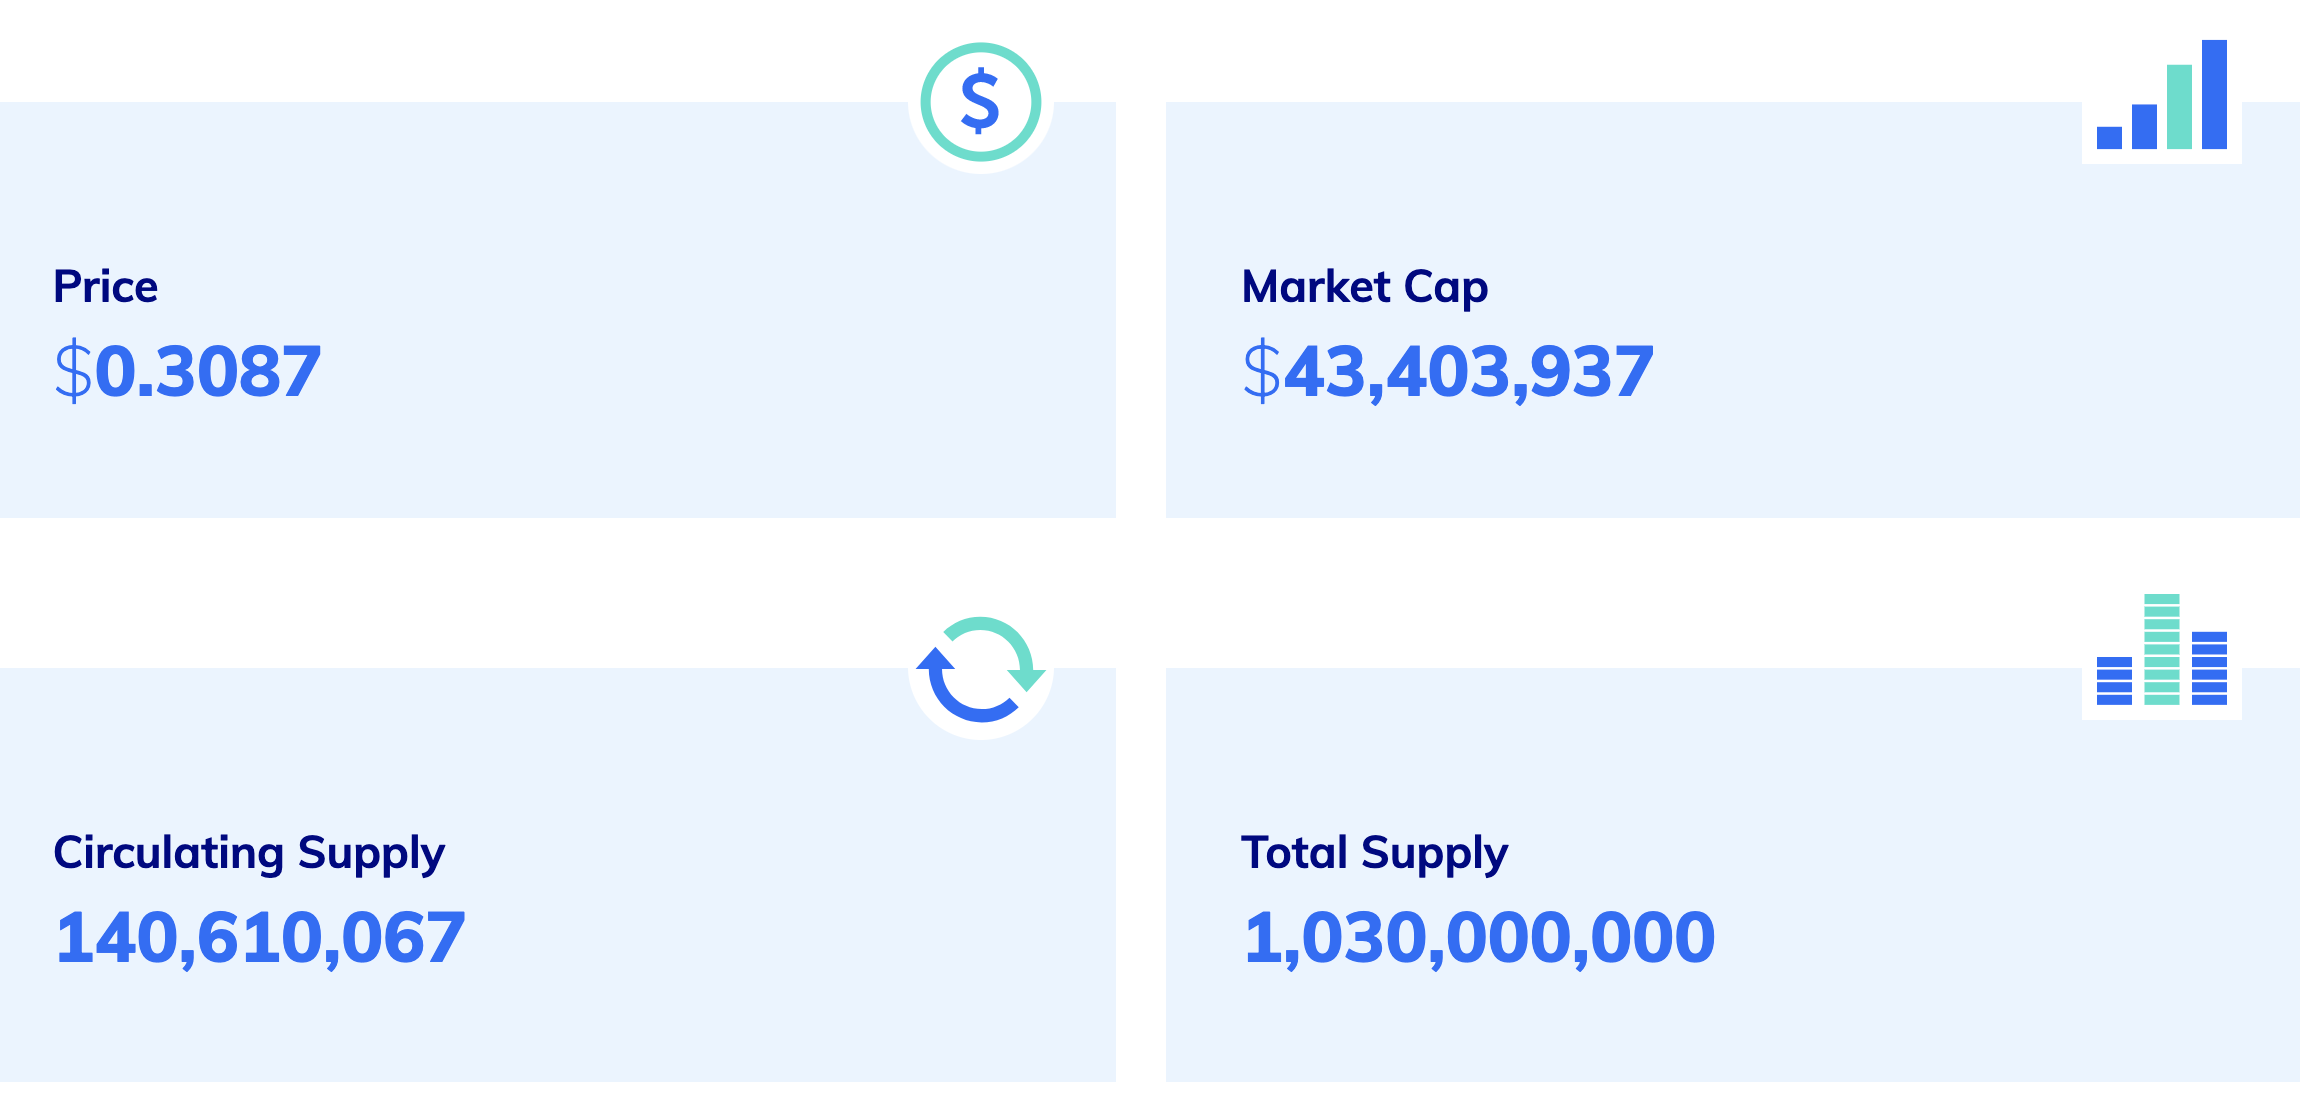 bZx Joins the Defi Party with a $40 Million Market Cap